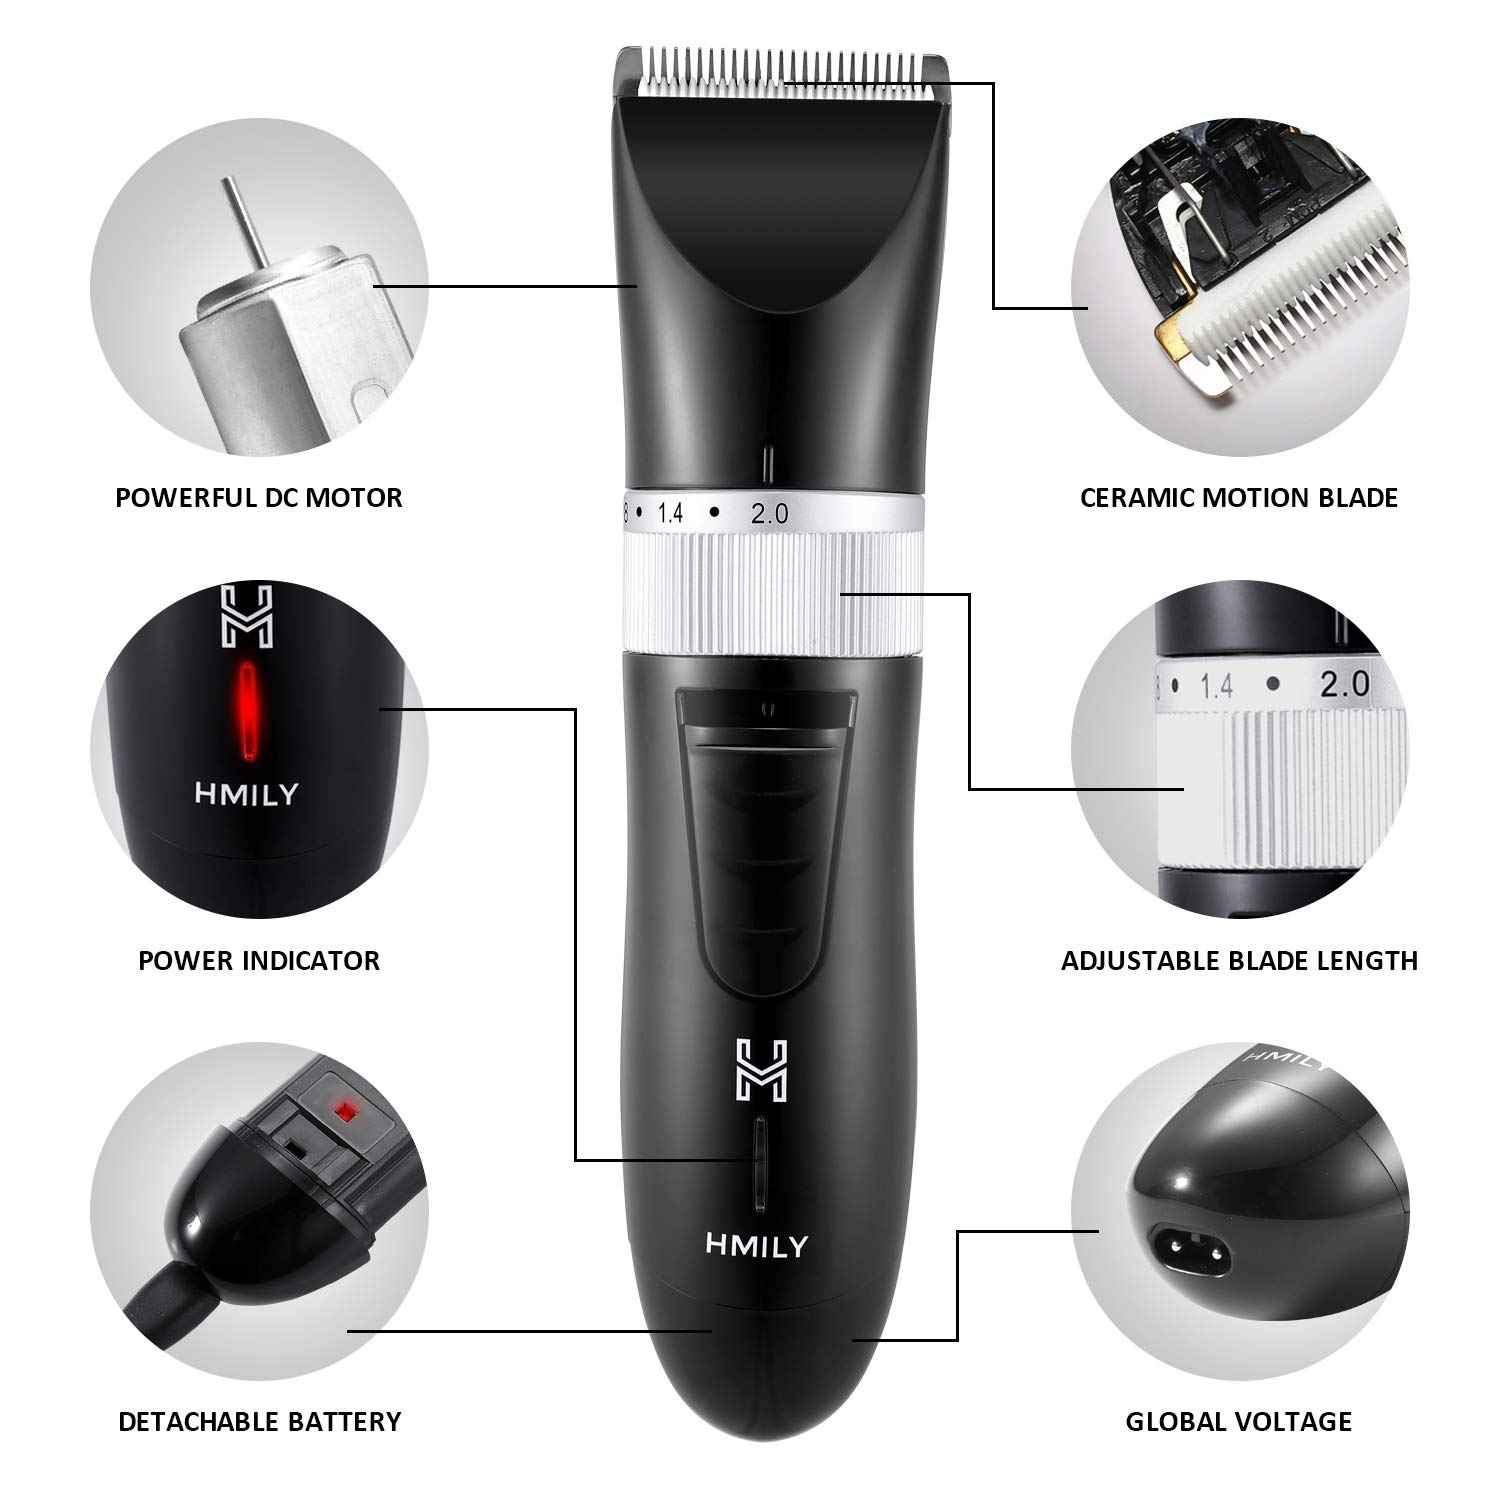 Professional Hair Clippers for Men, Cordless Beard Trimmer Rechargeble Hair Buzzer - Black